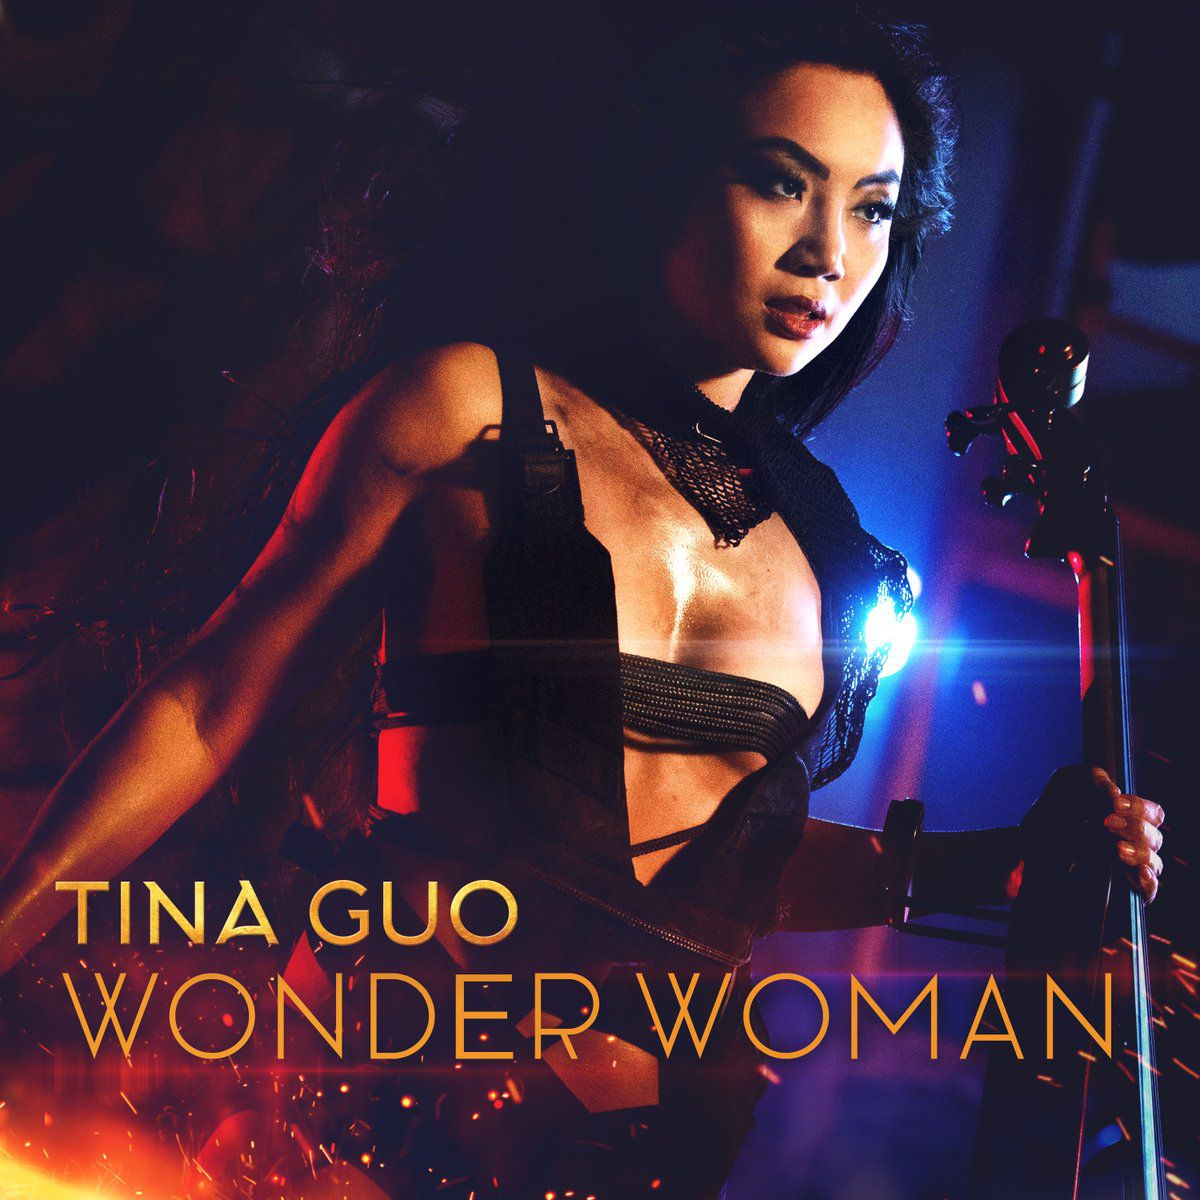 Tina Guo - Wonder Woman main theme soundtrack